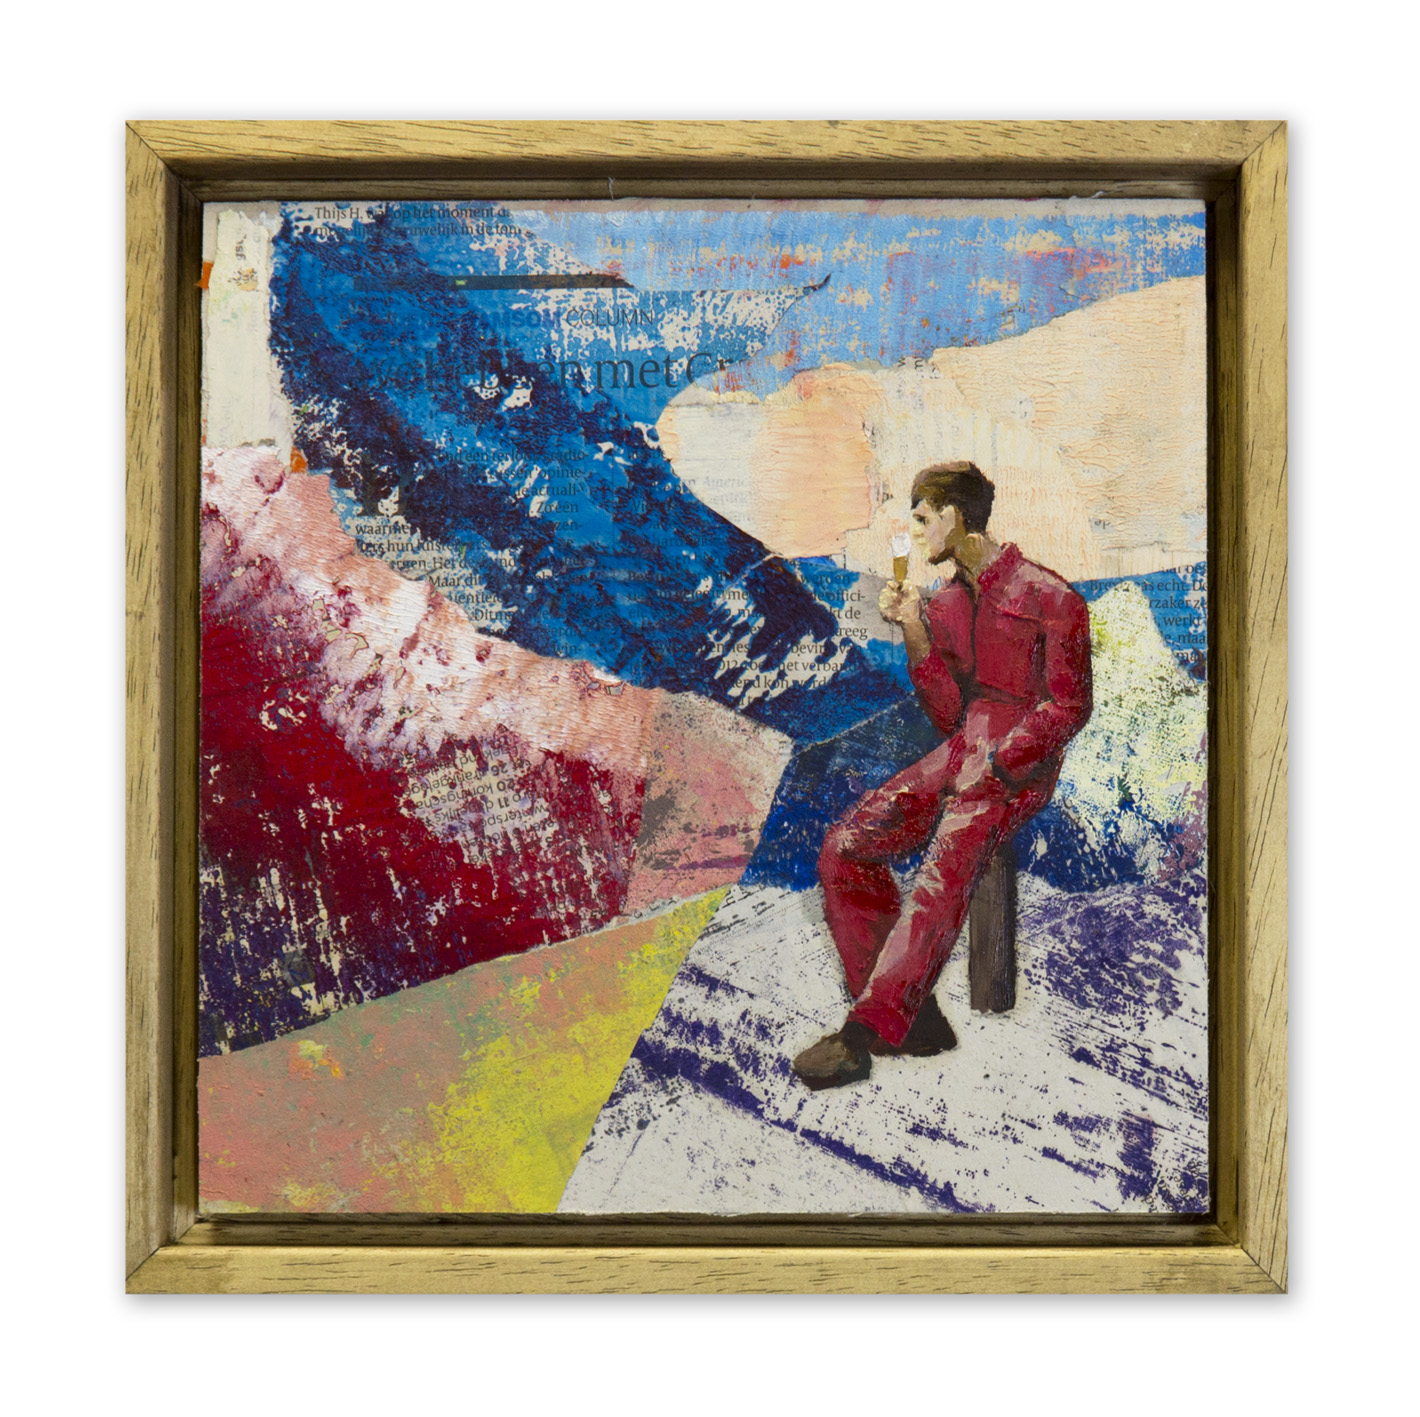 Casper Verborg   Lockdown Observation (Malieveld)   oil and spray paint on newspapers, mounted on wooden panel   20 x 20 cm   2020